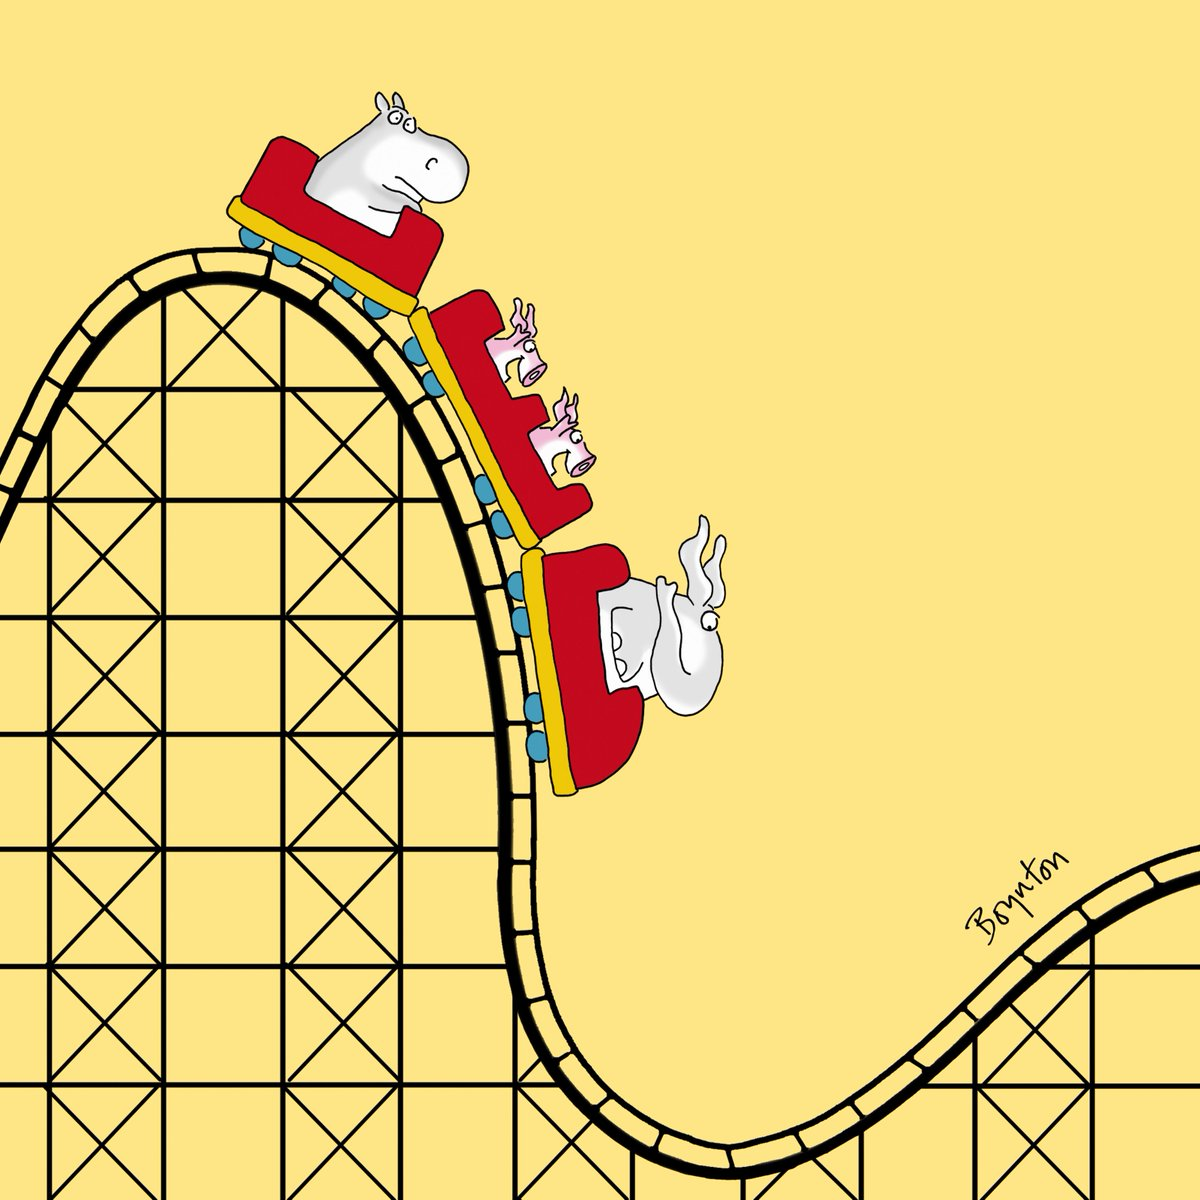 It's #NationalRollerCoasterDay Customarily, they go up after the down...